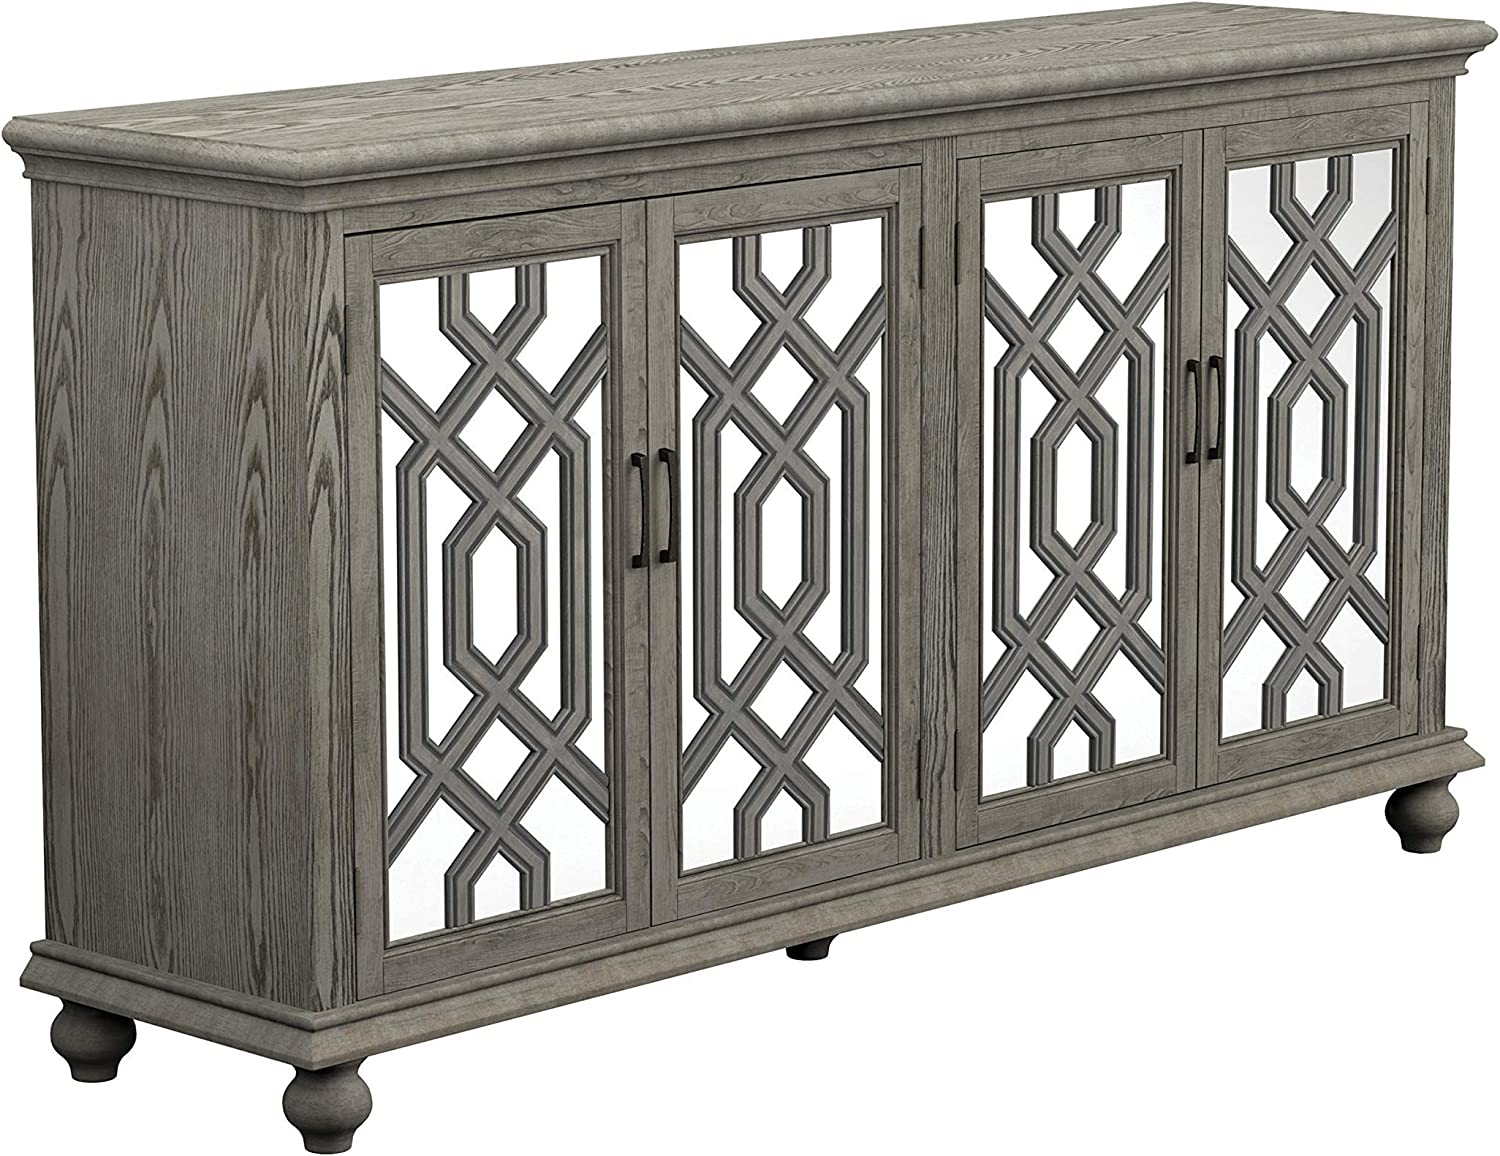 Coaster Home Furnishings 4-Door Antique White Accent Cabinet